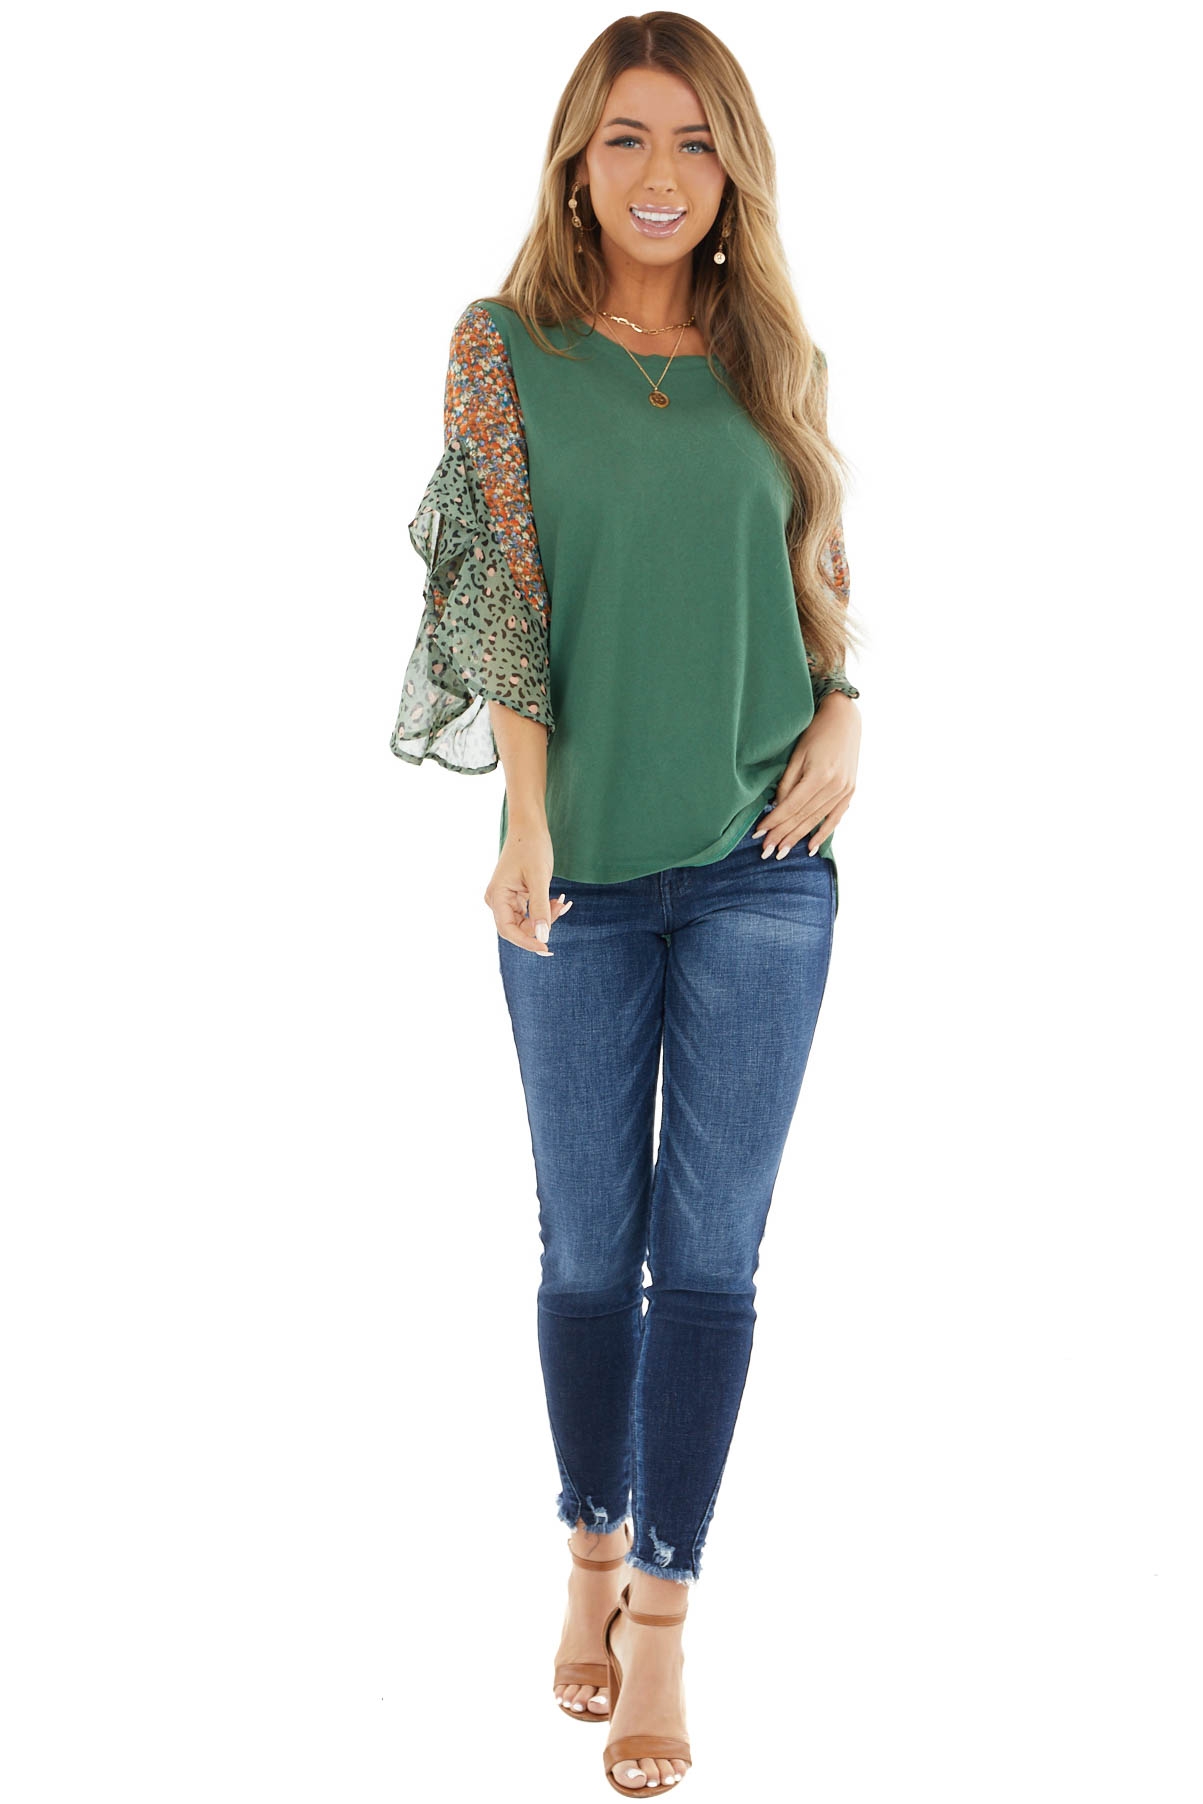 Jade Green Knit Top with Contrast Multi Print Flare Sleeves